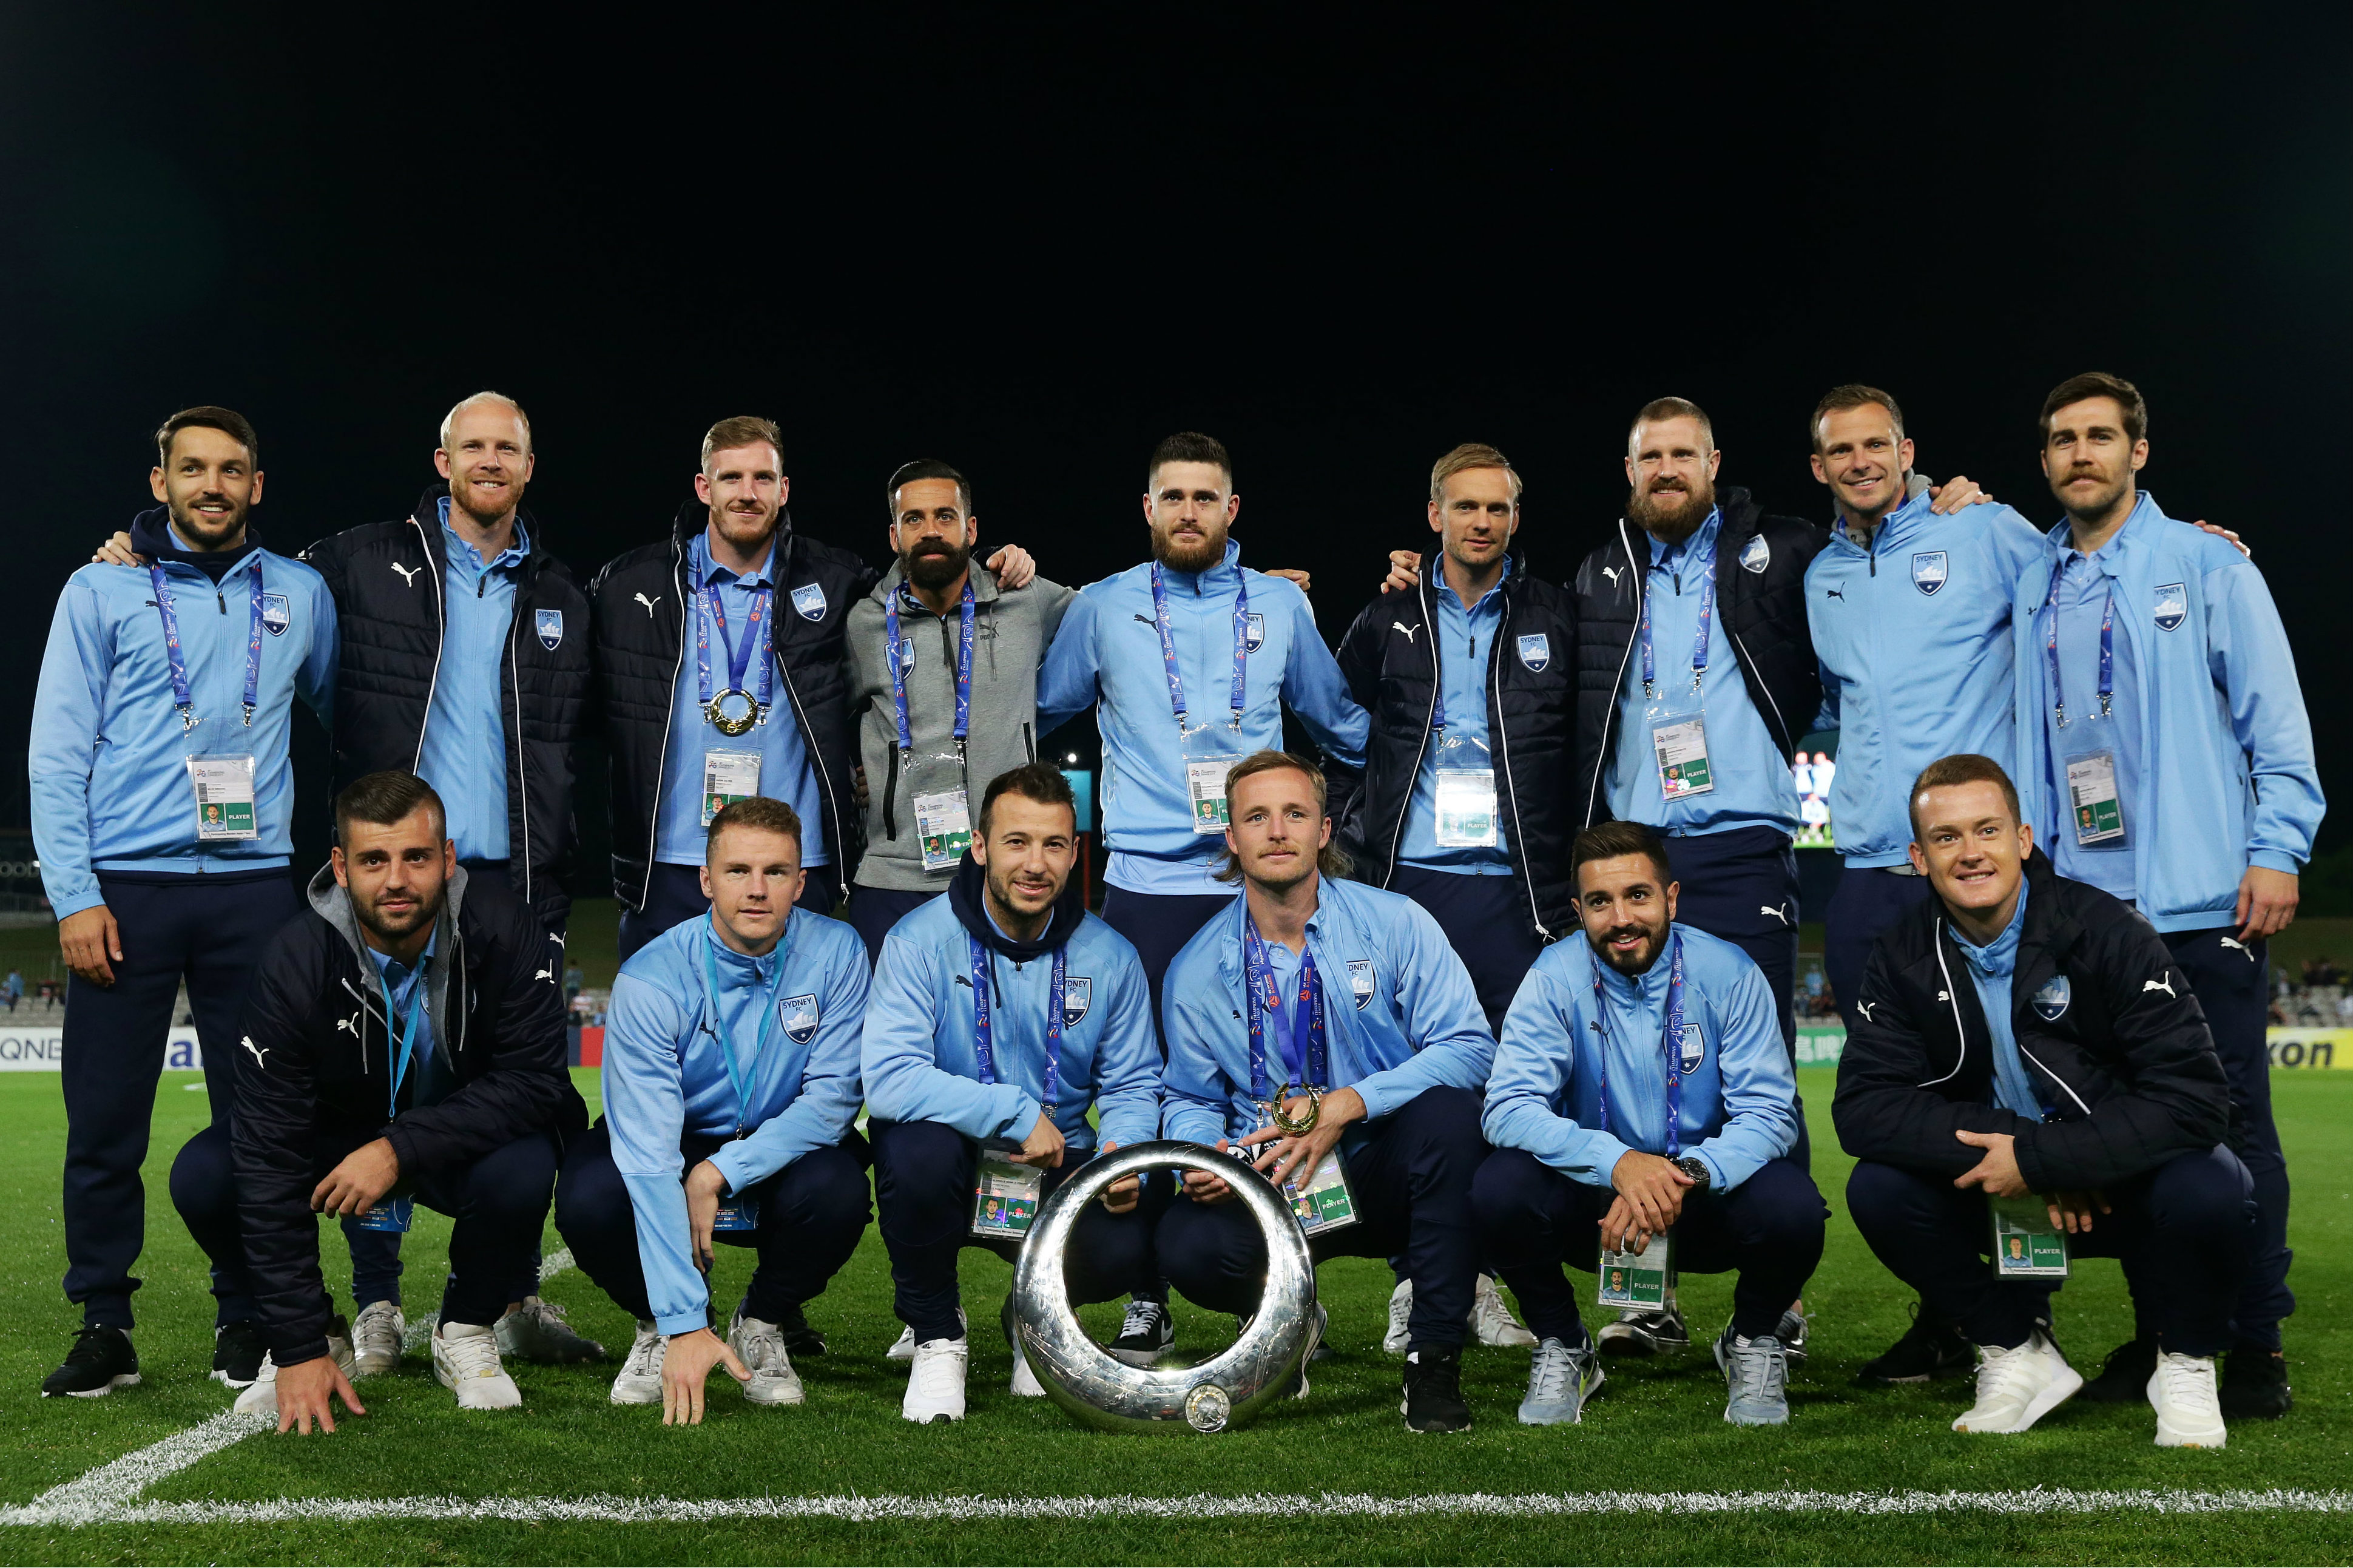 Sydney FC's Grand Final winning team were presented to the crowd before kick-off